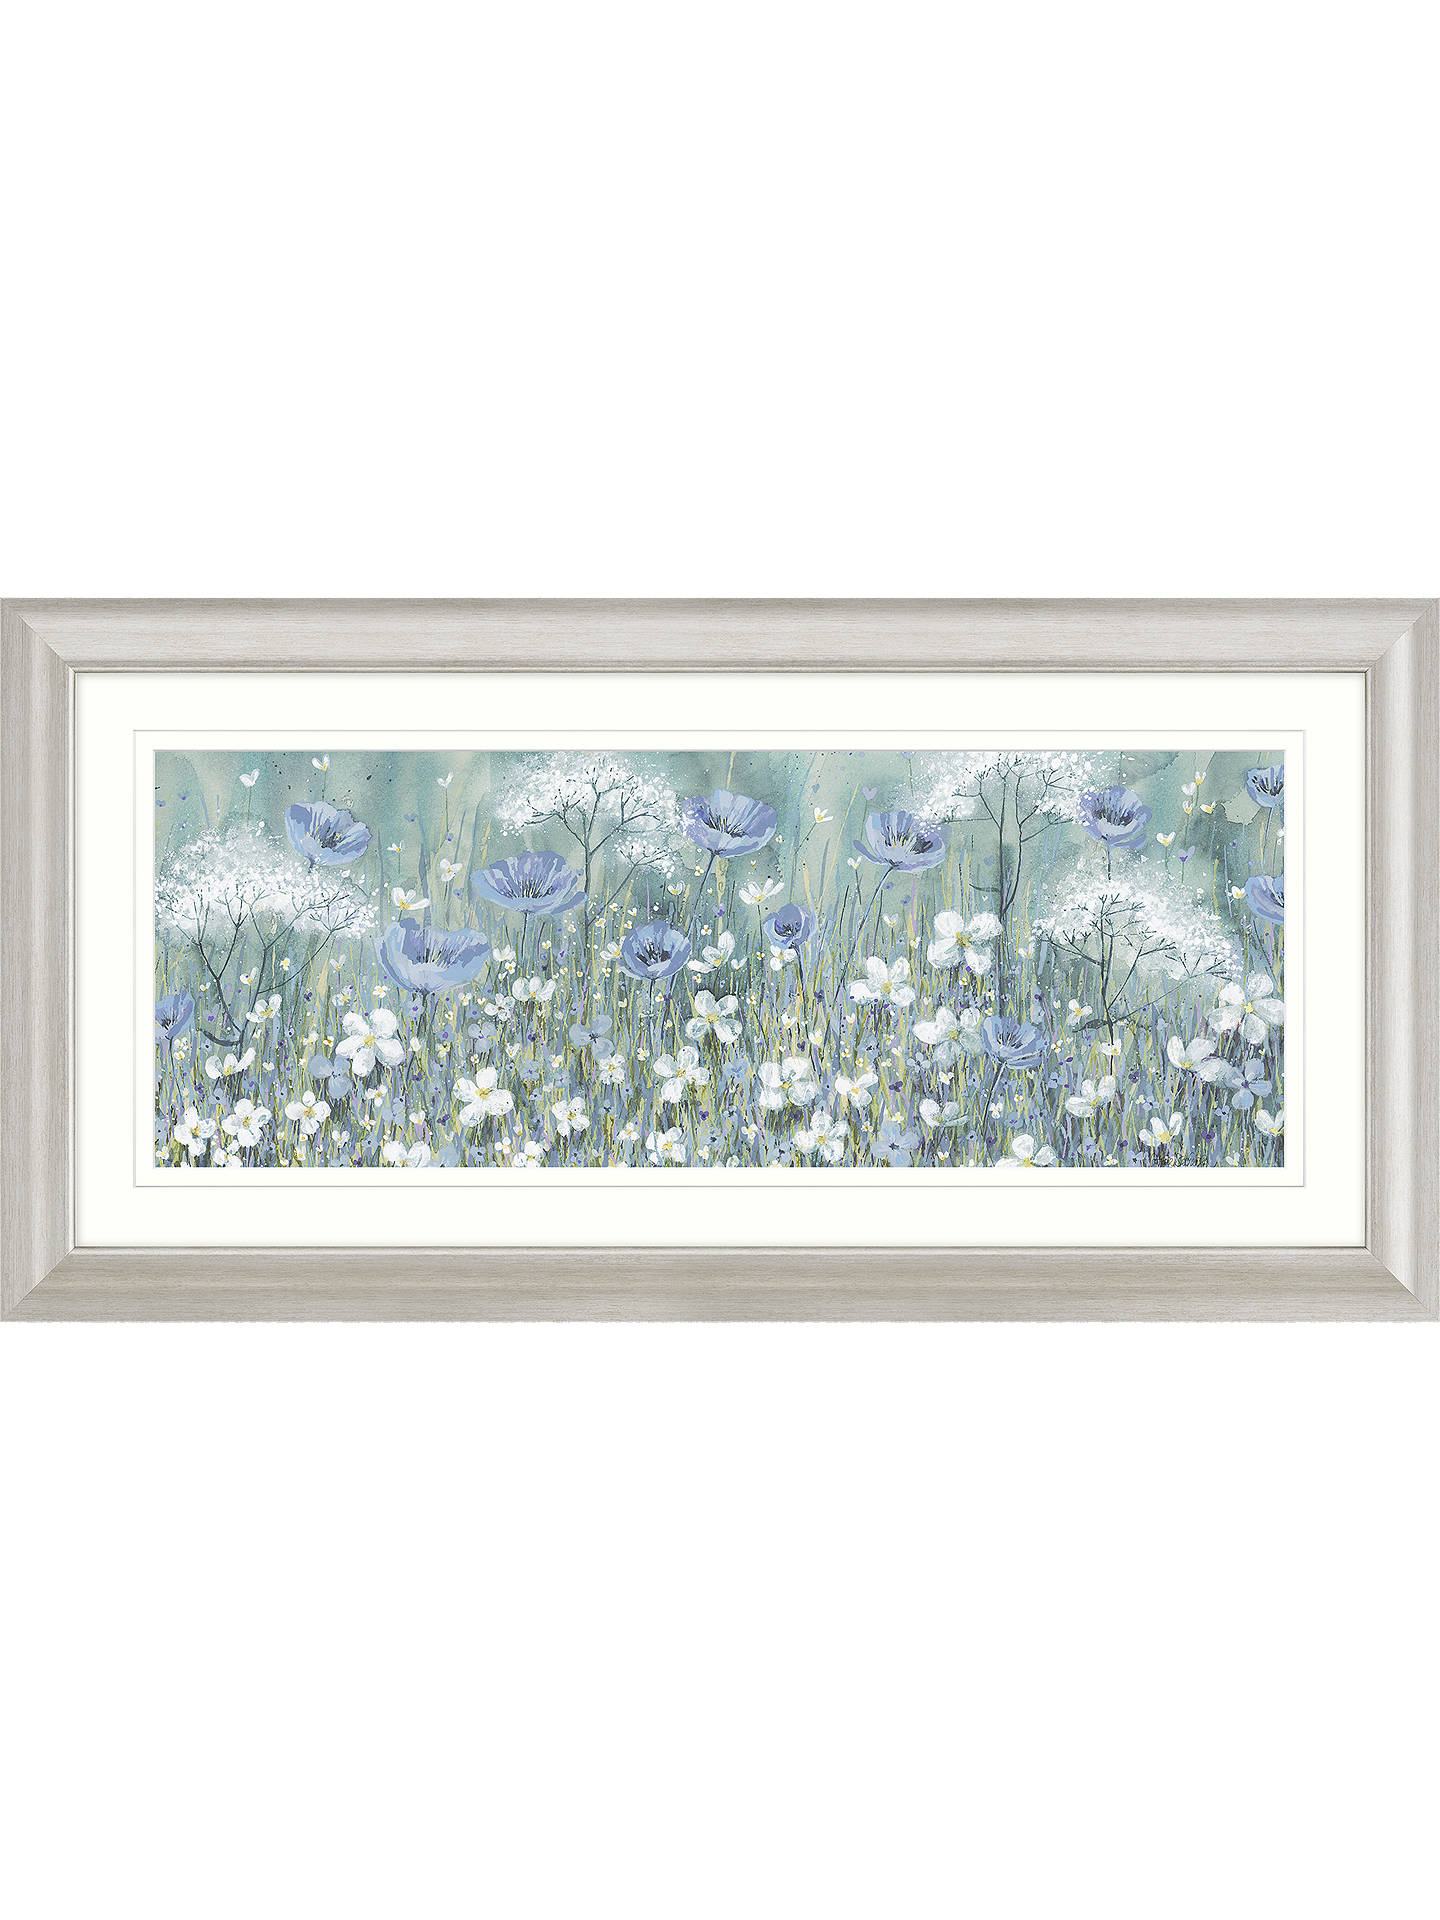 BuyCatherine Stephenson - Lavender Daisy Meadow Framed Print & Mount, 55.5 x 110.5cm Online at johnlewis.com